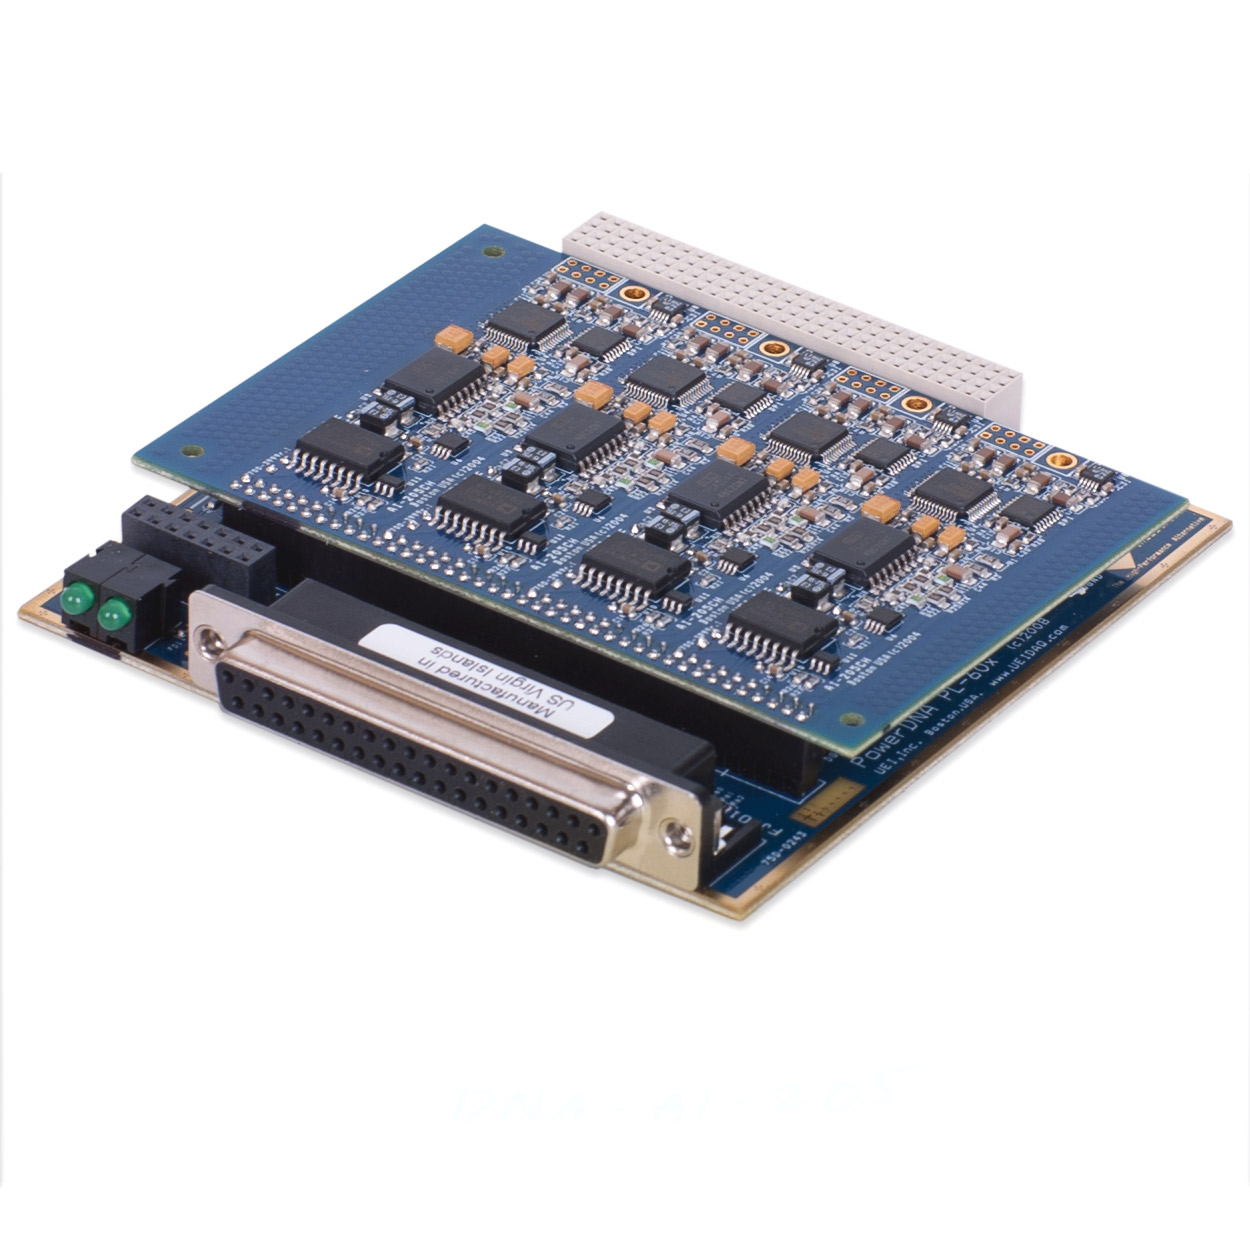 4-channel, 18-bit, 250 kS/s per channel, simultaneous sampling analog input, data acquisition board